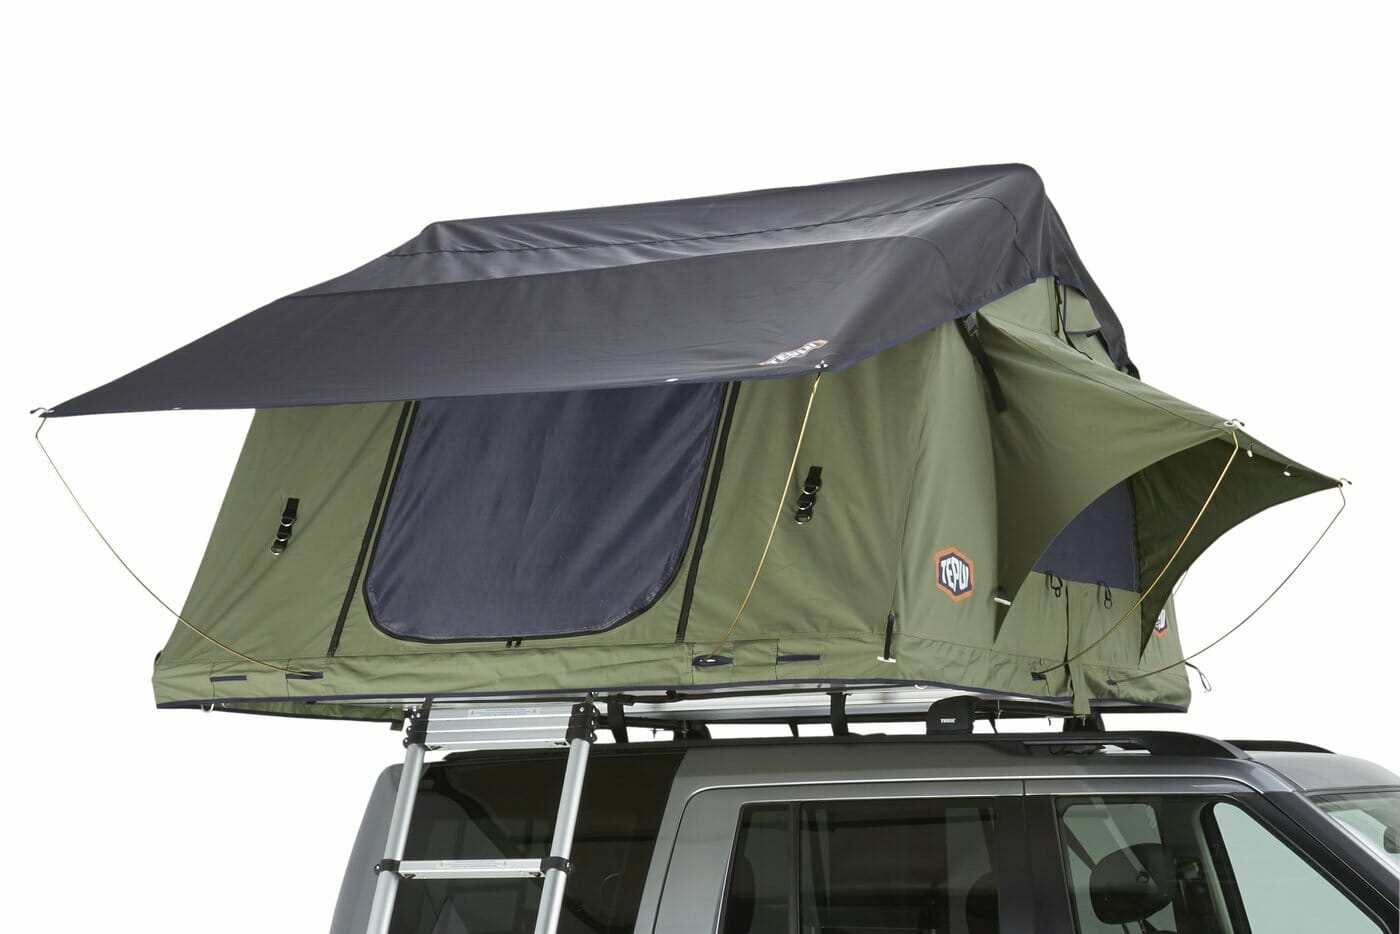 Softshell rooftop tent